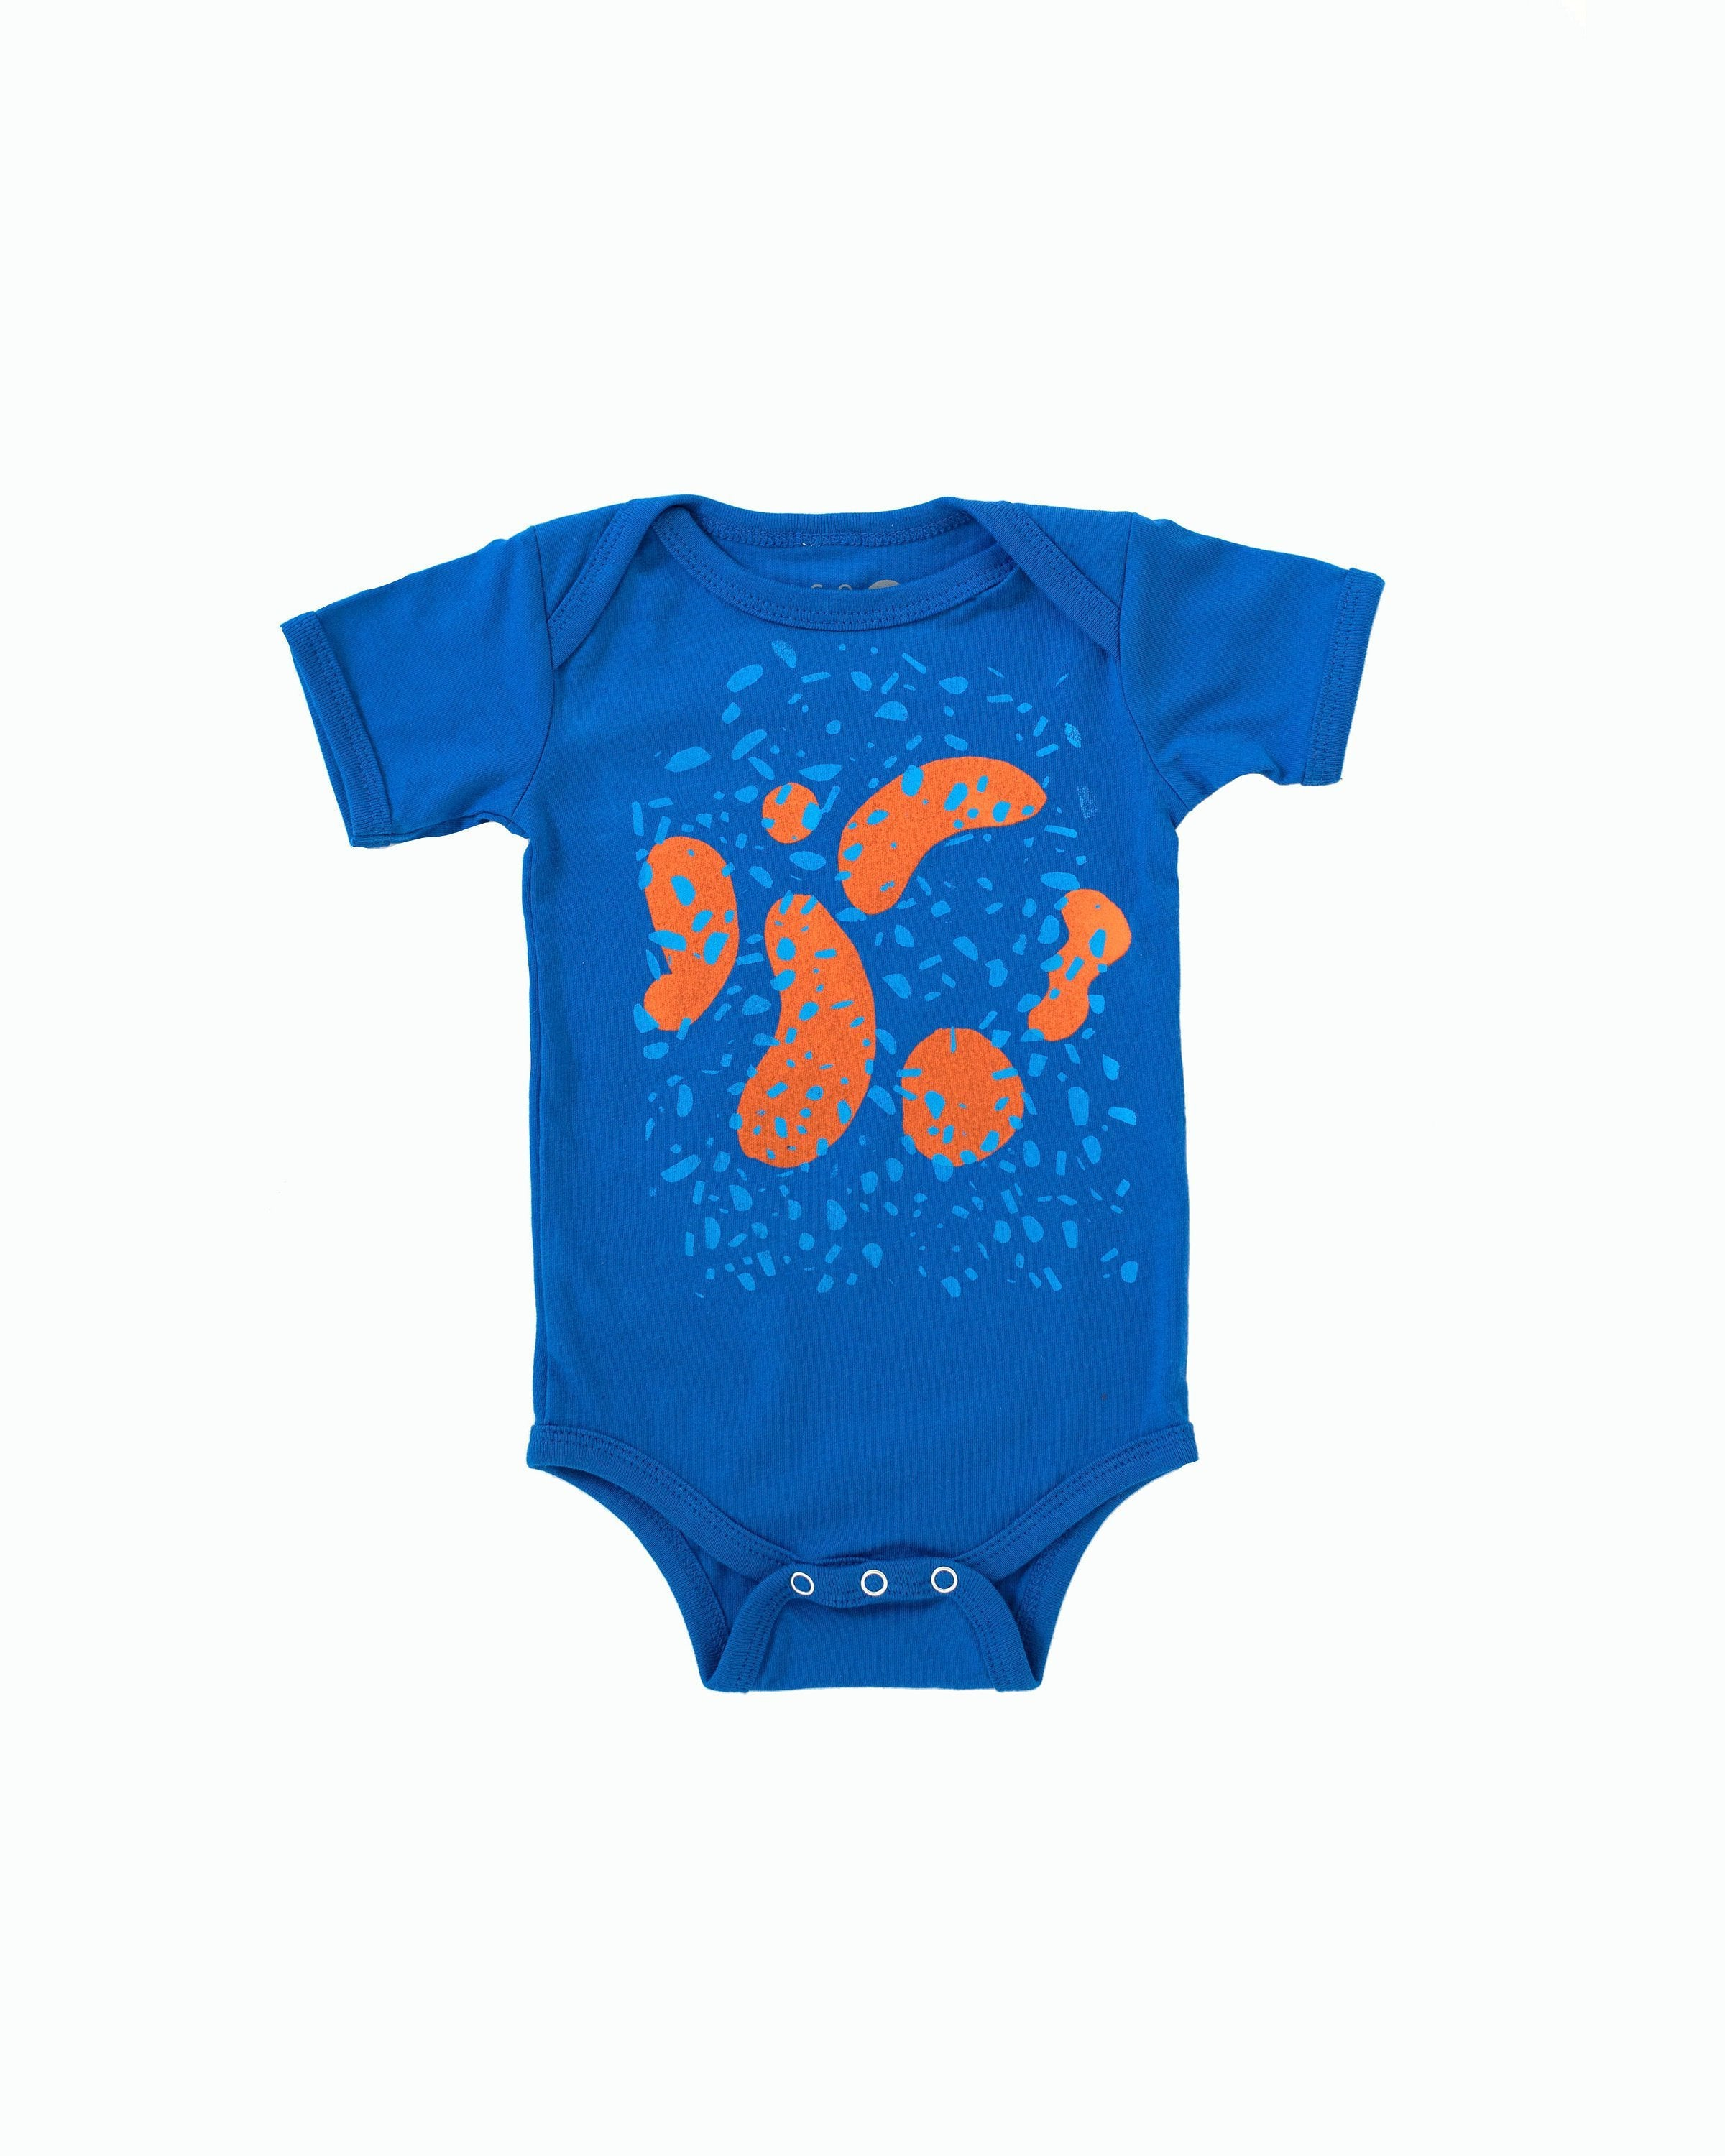 Blue Bubbles onesie